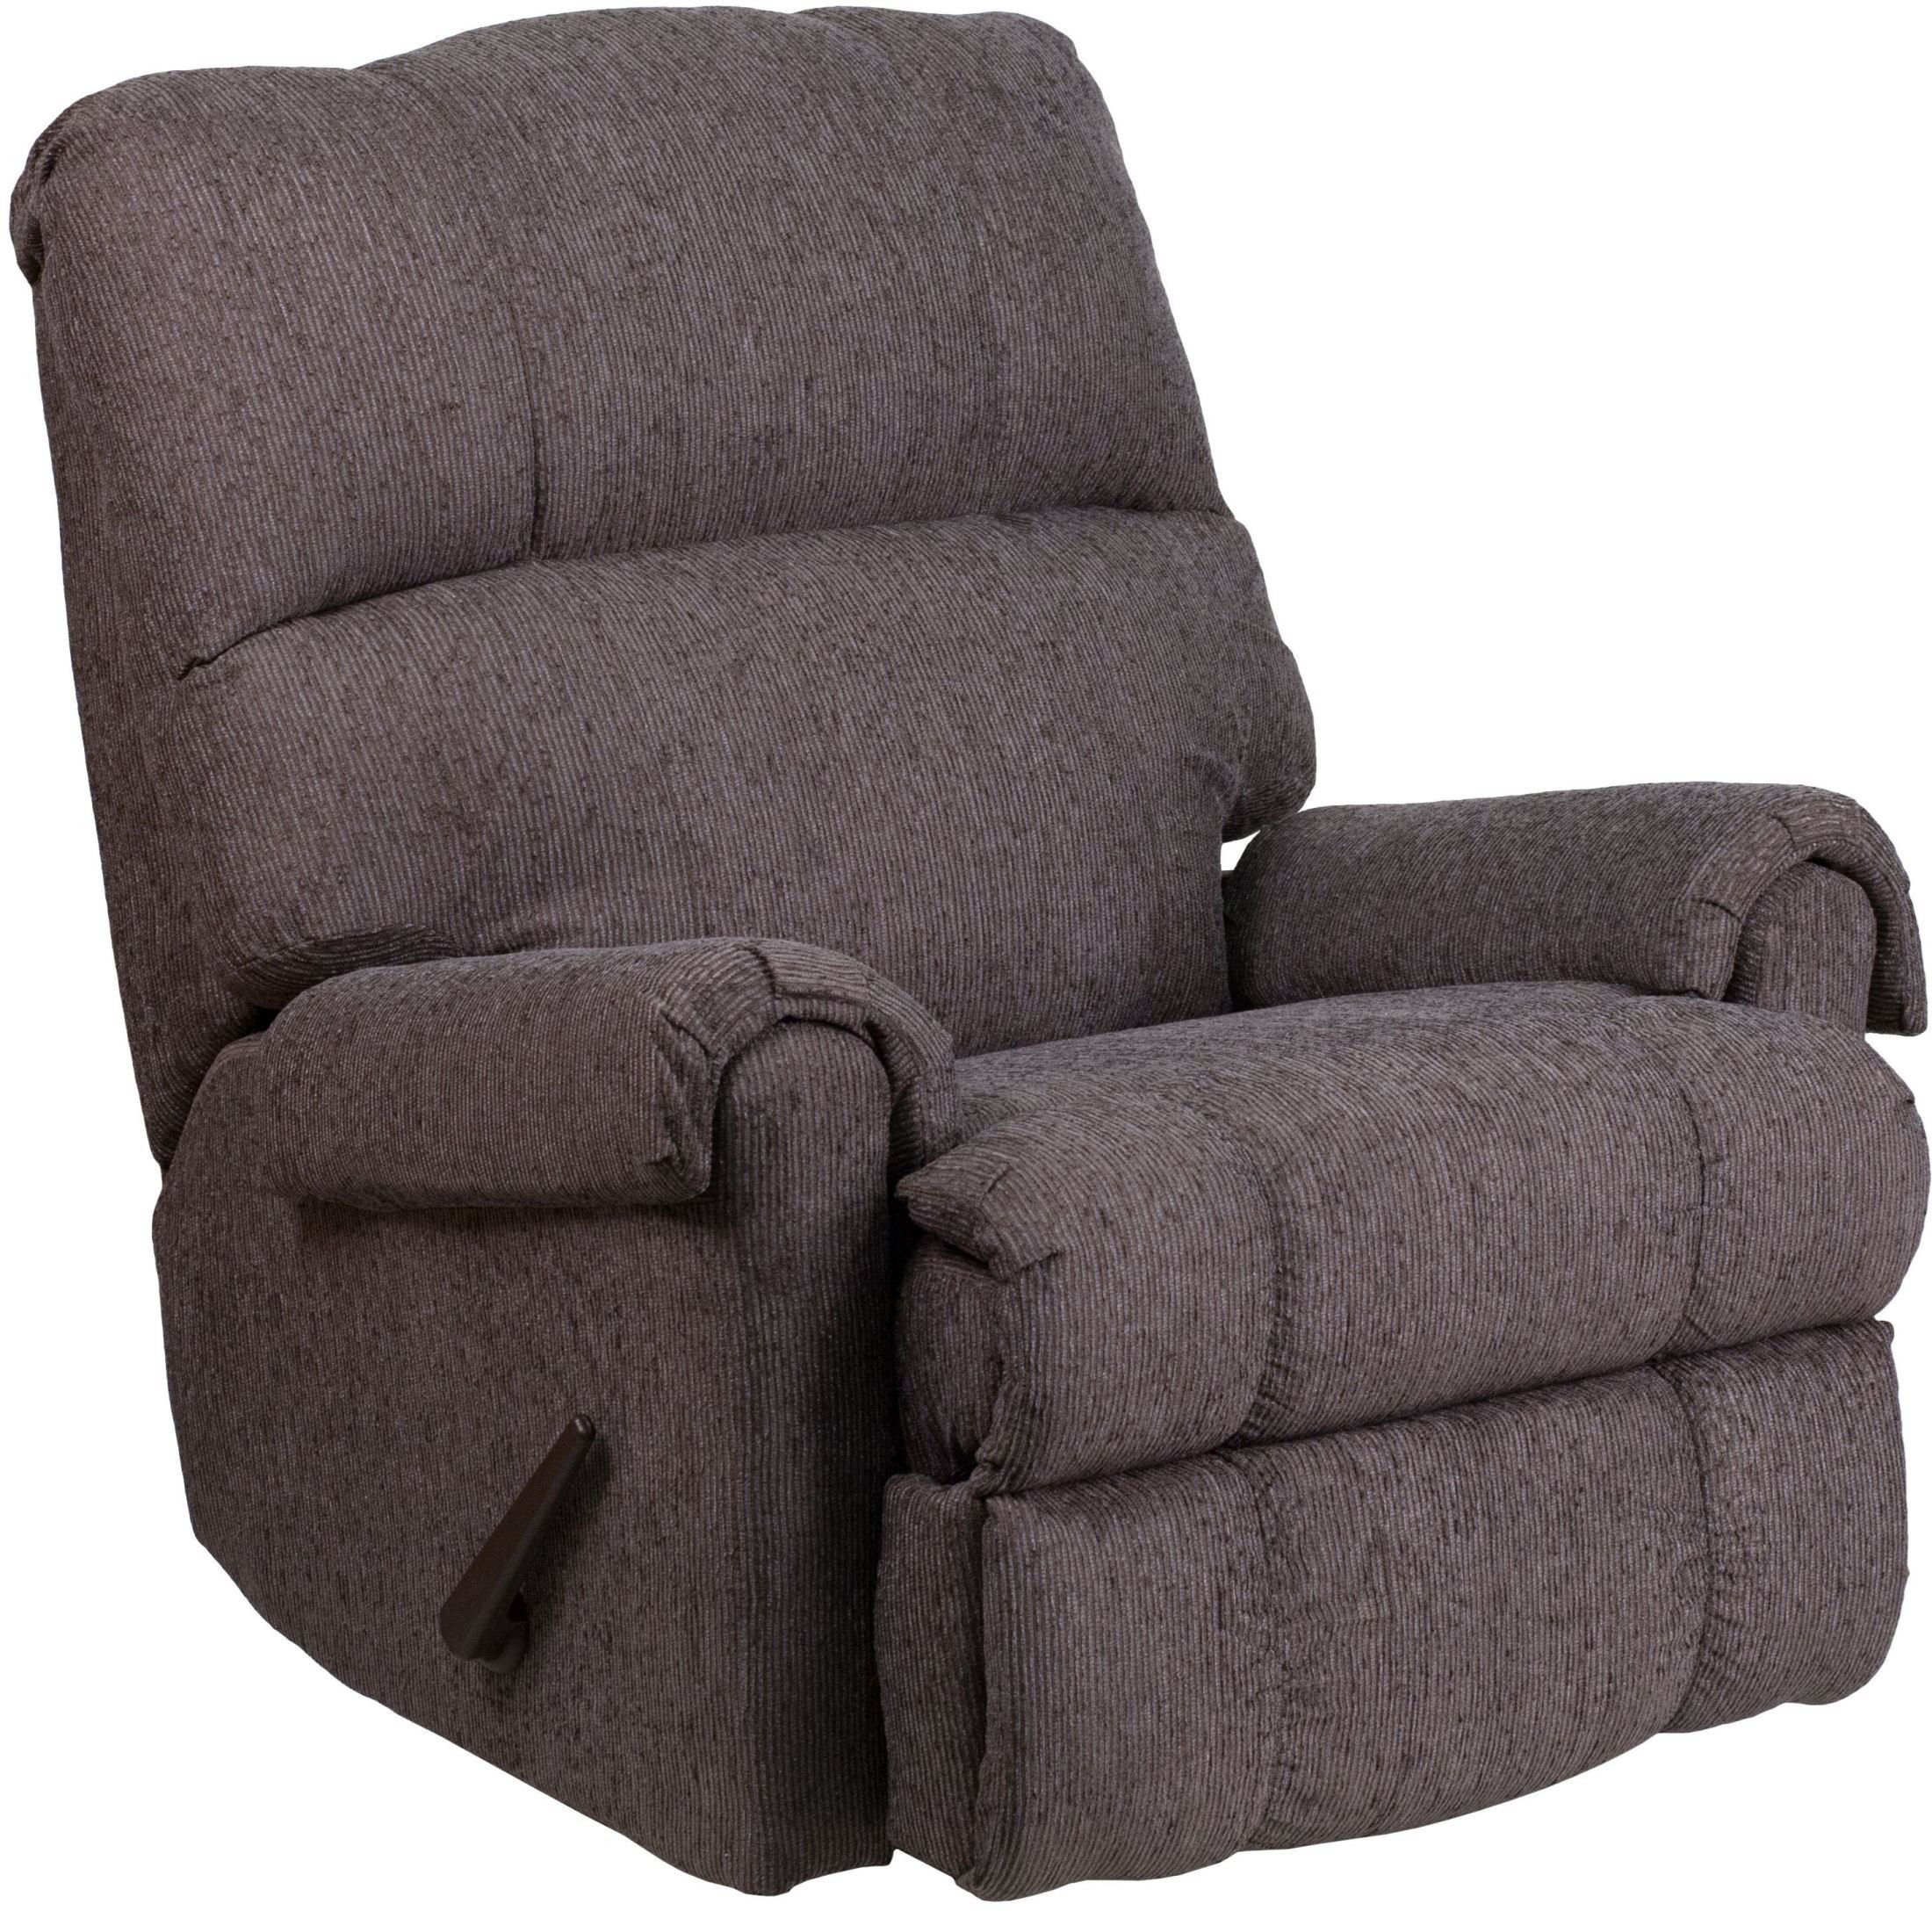 grey rocker recliner ranika gray rocker recliner from 9021225 greyson grey rocker. Black Bedroom Furniture Sets. Home Design Ideas